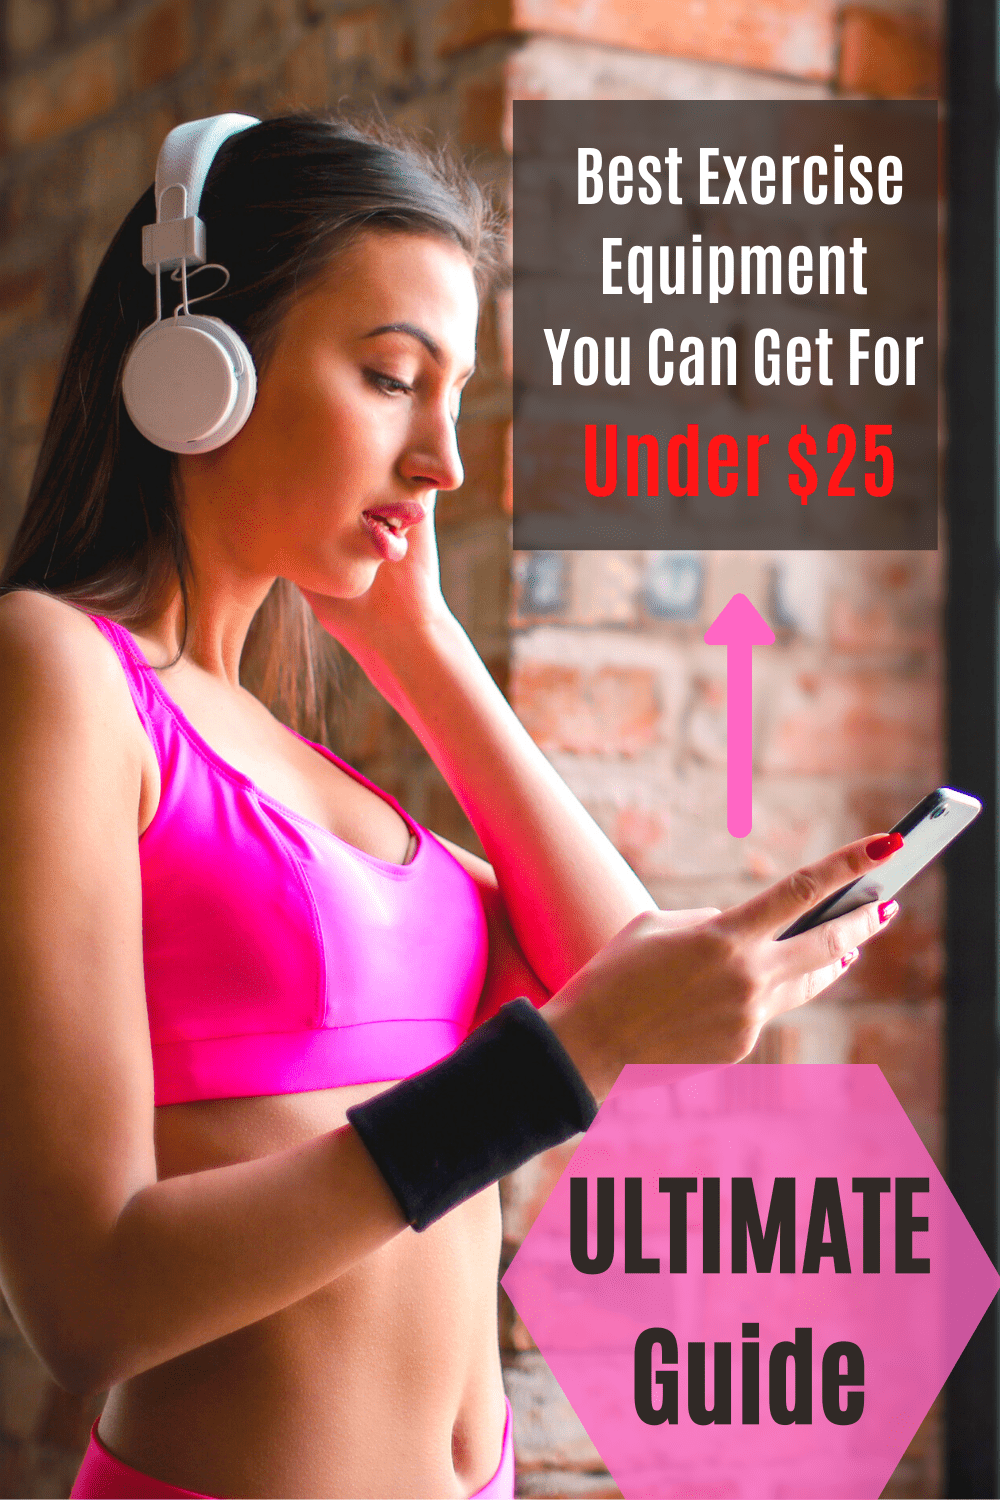 Best Exercise Equipment You Can Get For Under $25 / Ultimate Guide